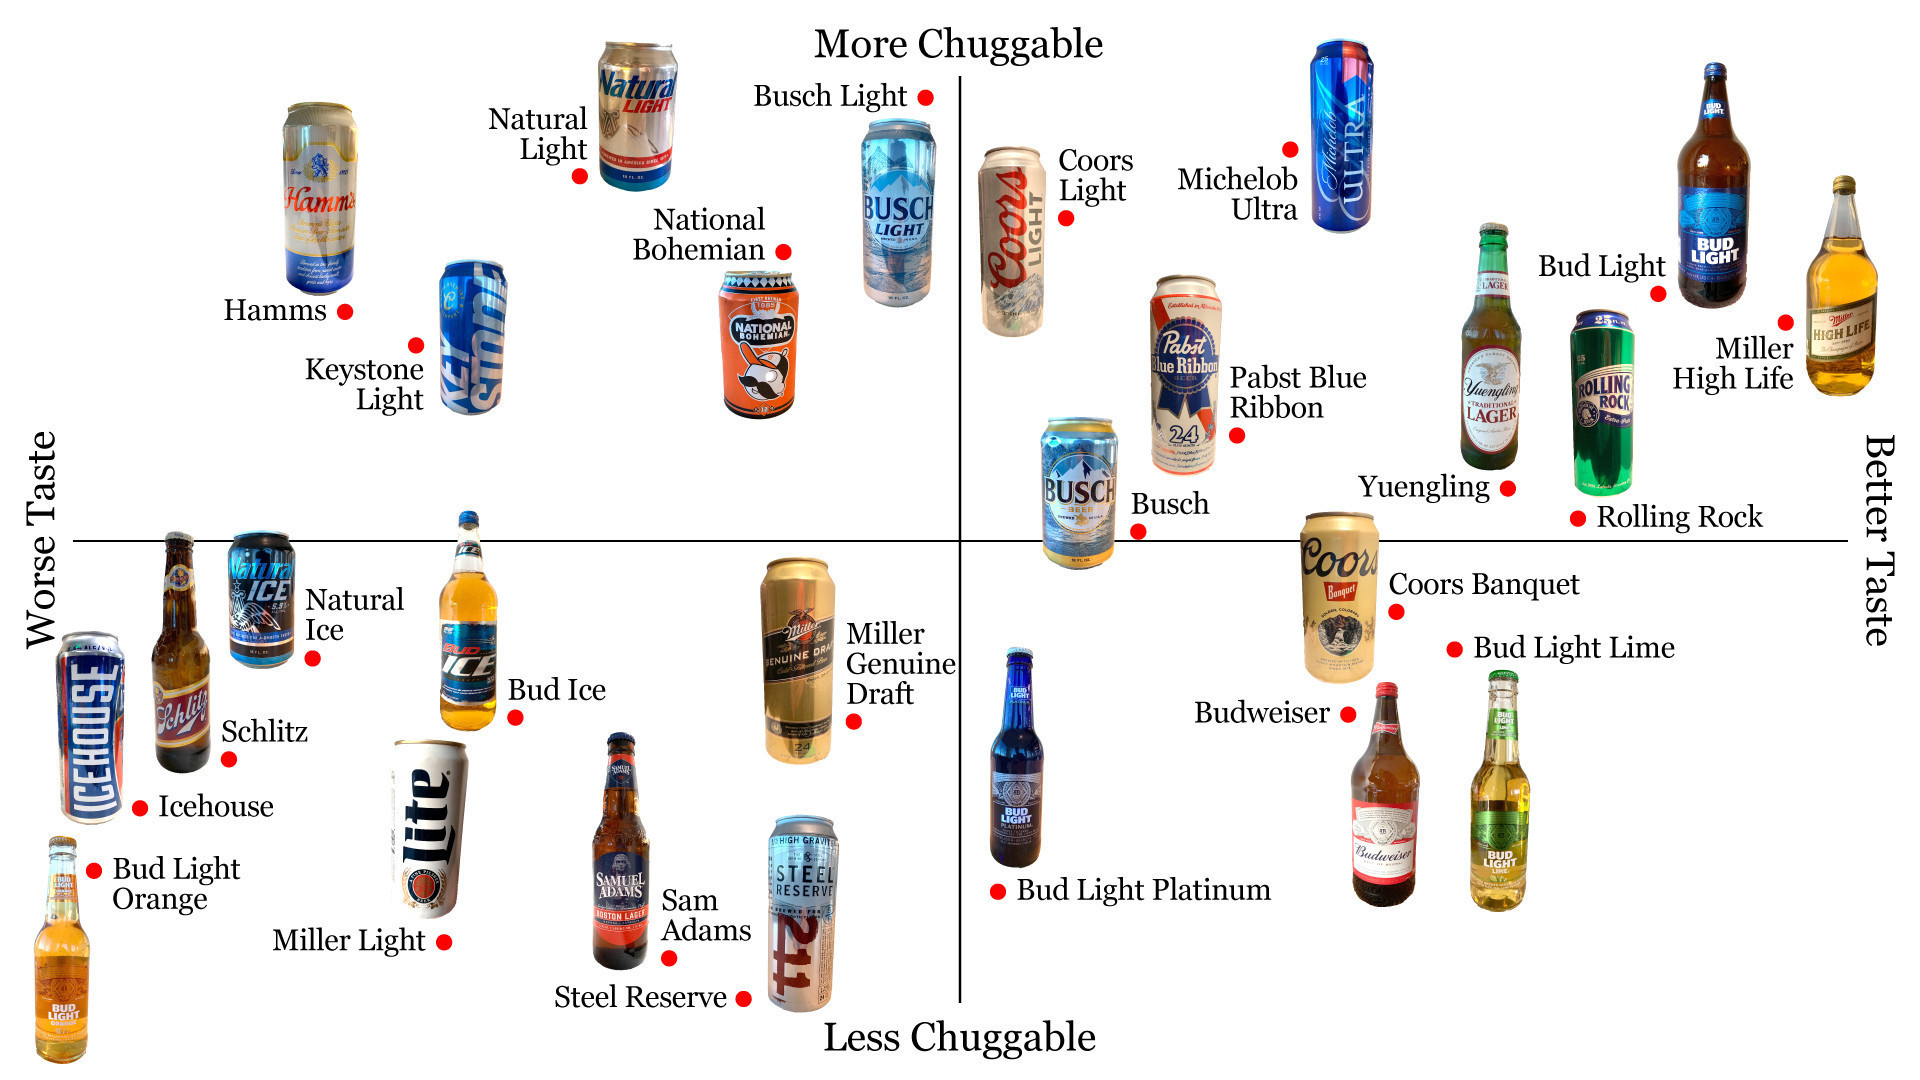 latimes.com - Lucas Kwan Peterson - The official domestic beer power rankings